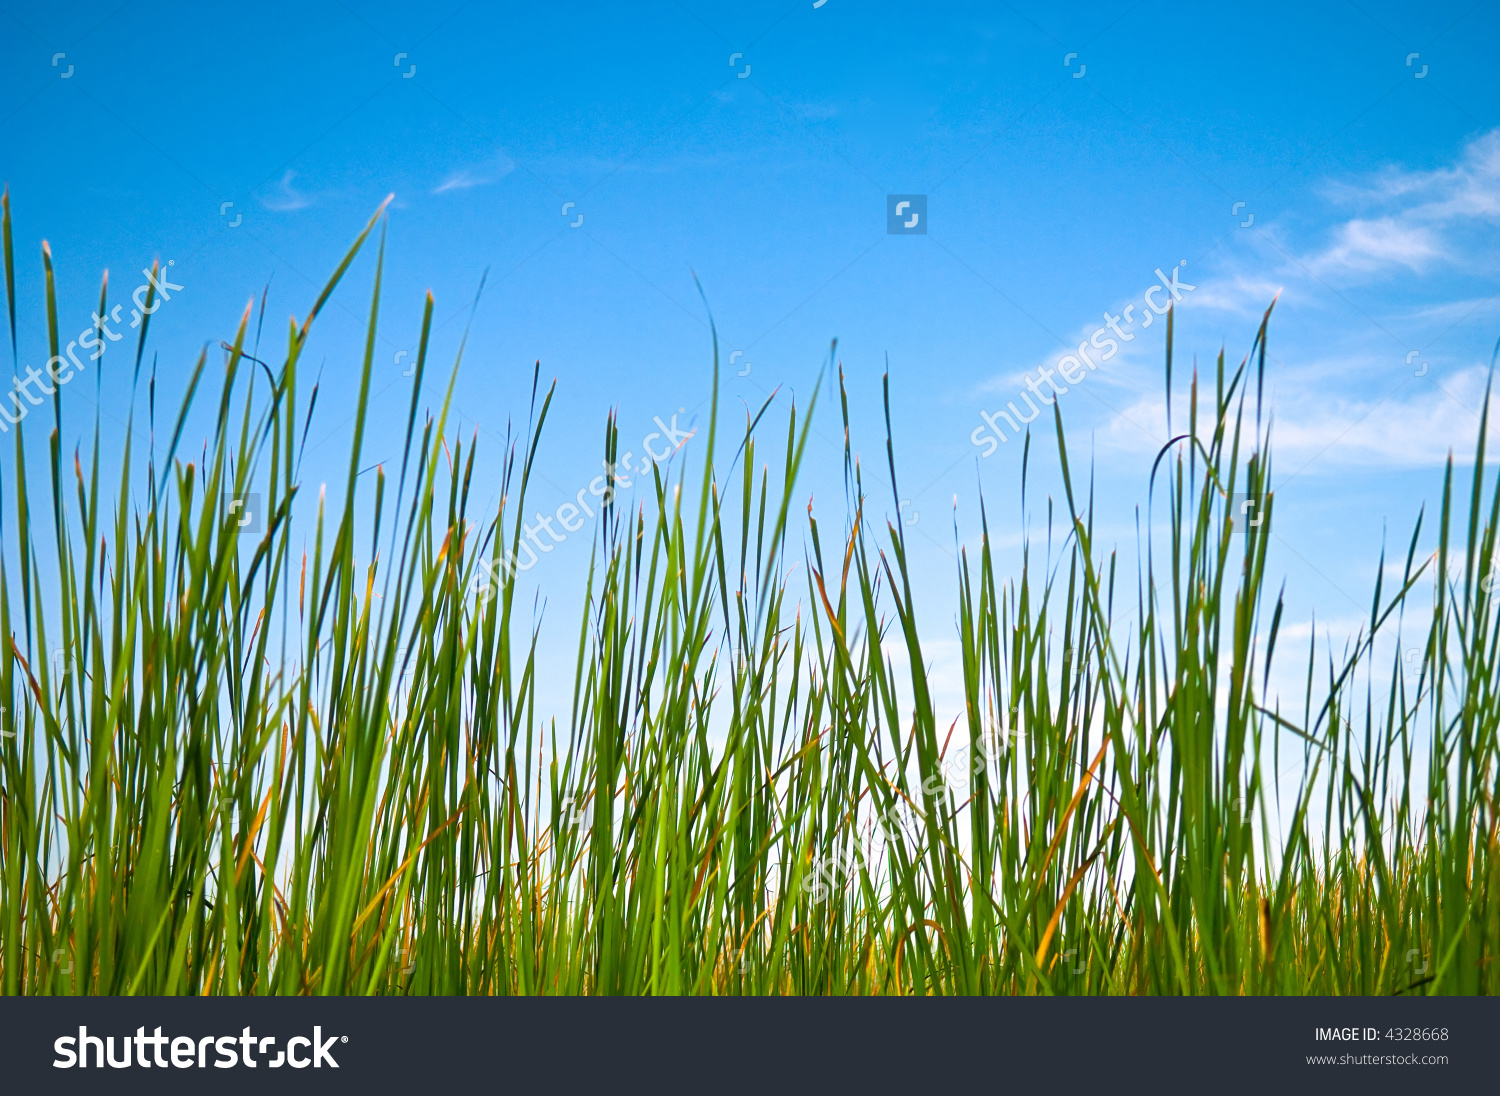 Saw Grass clipart #3, Download drawings